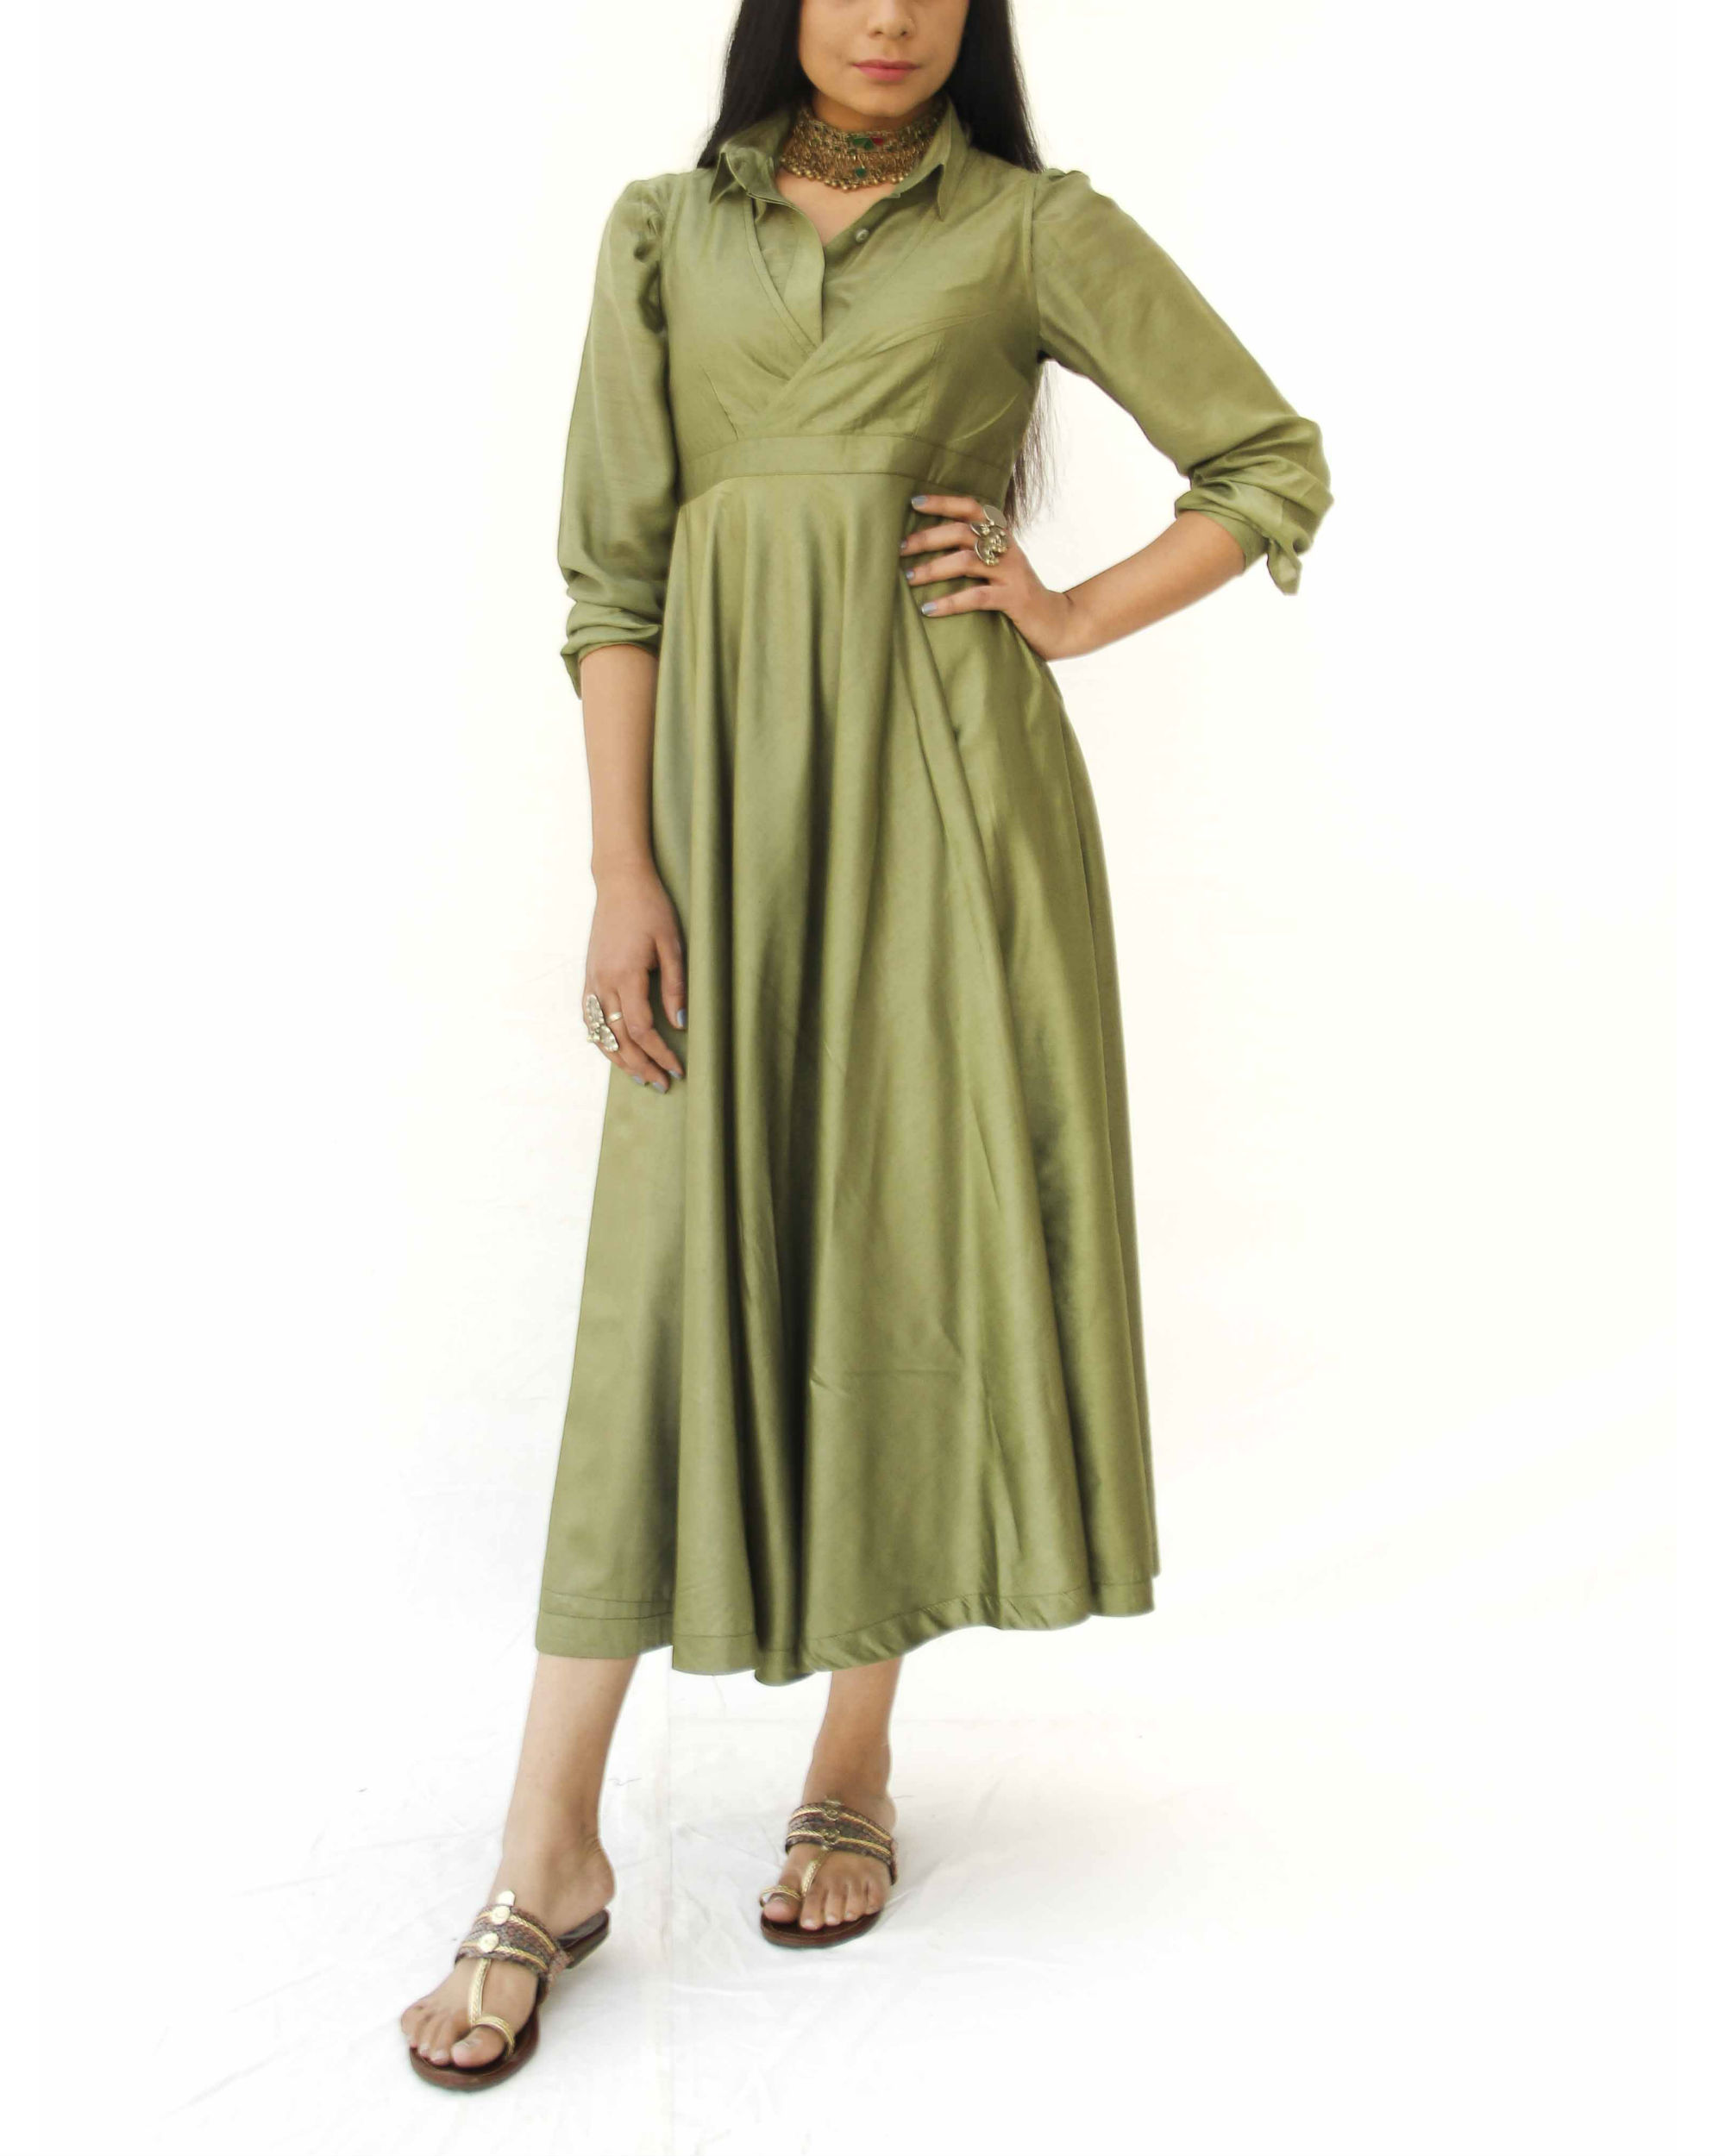 Olive green magical walk dress